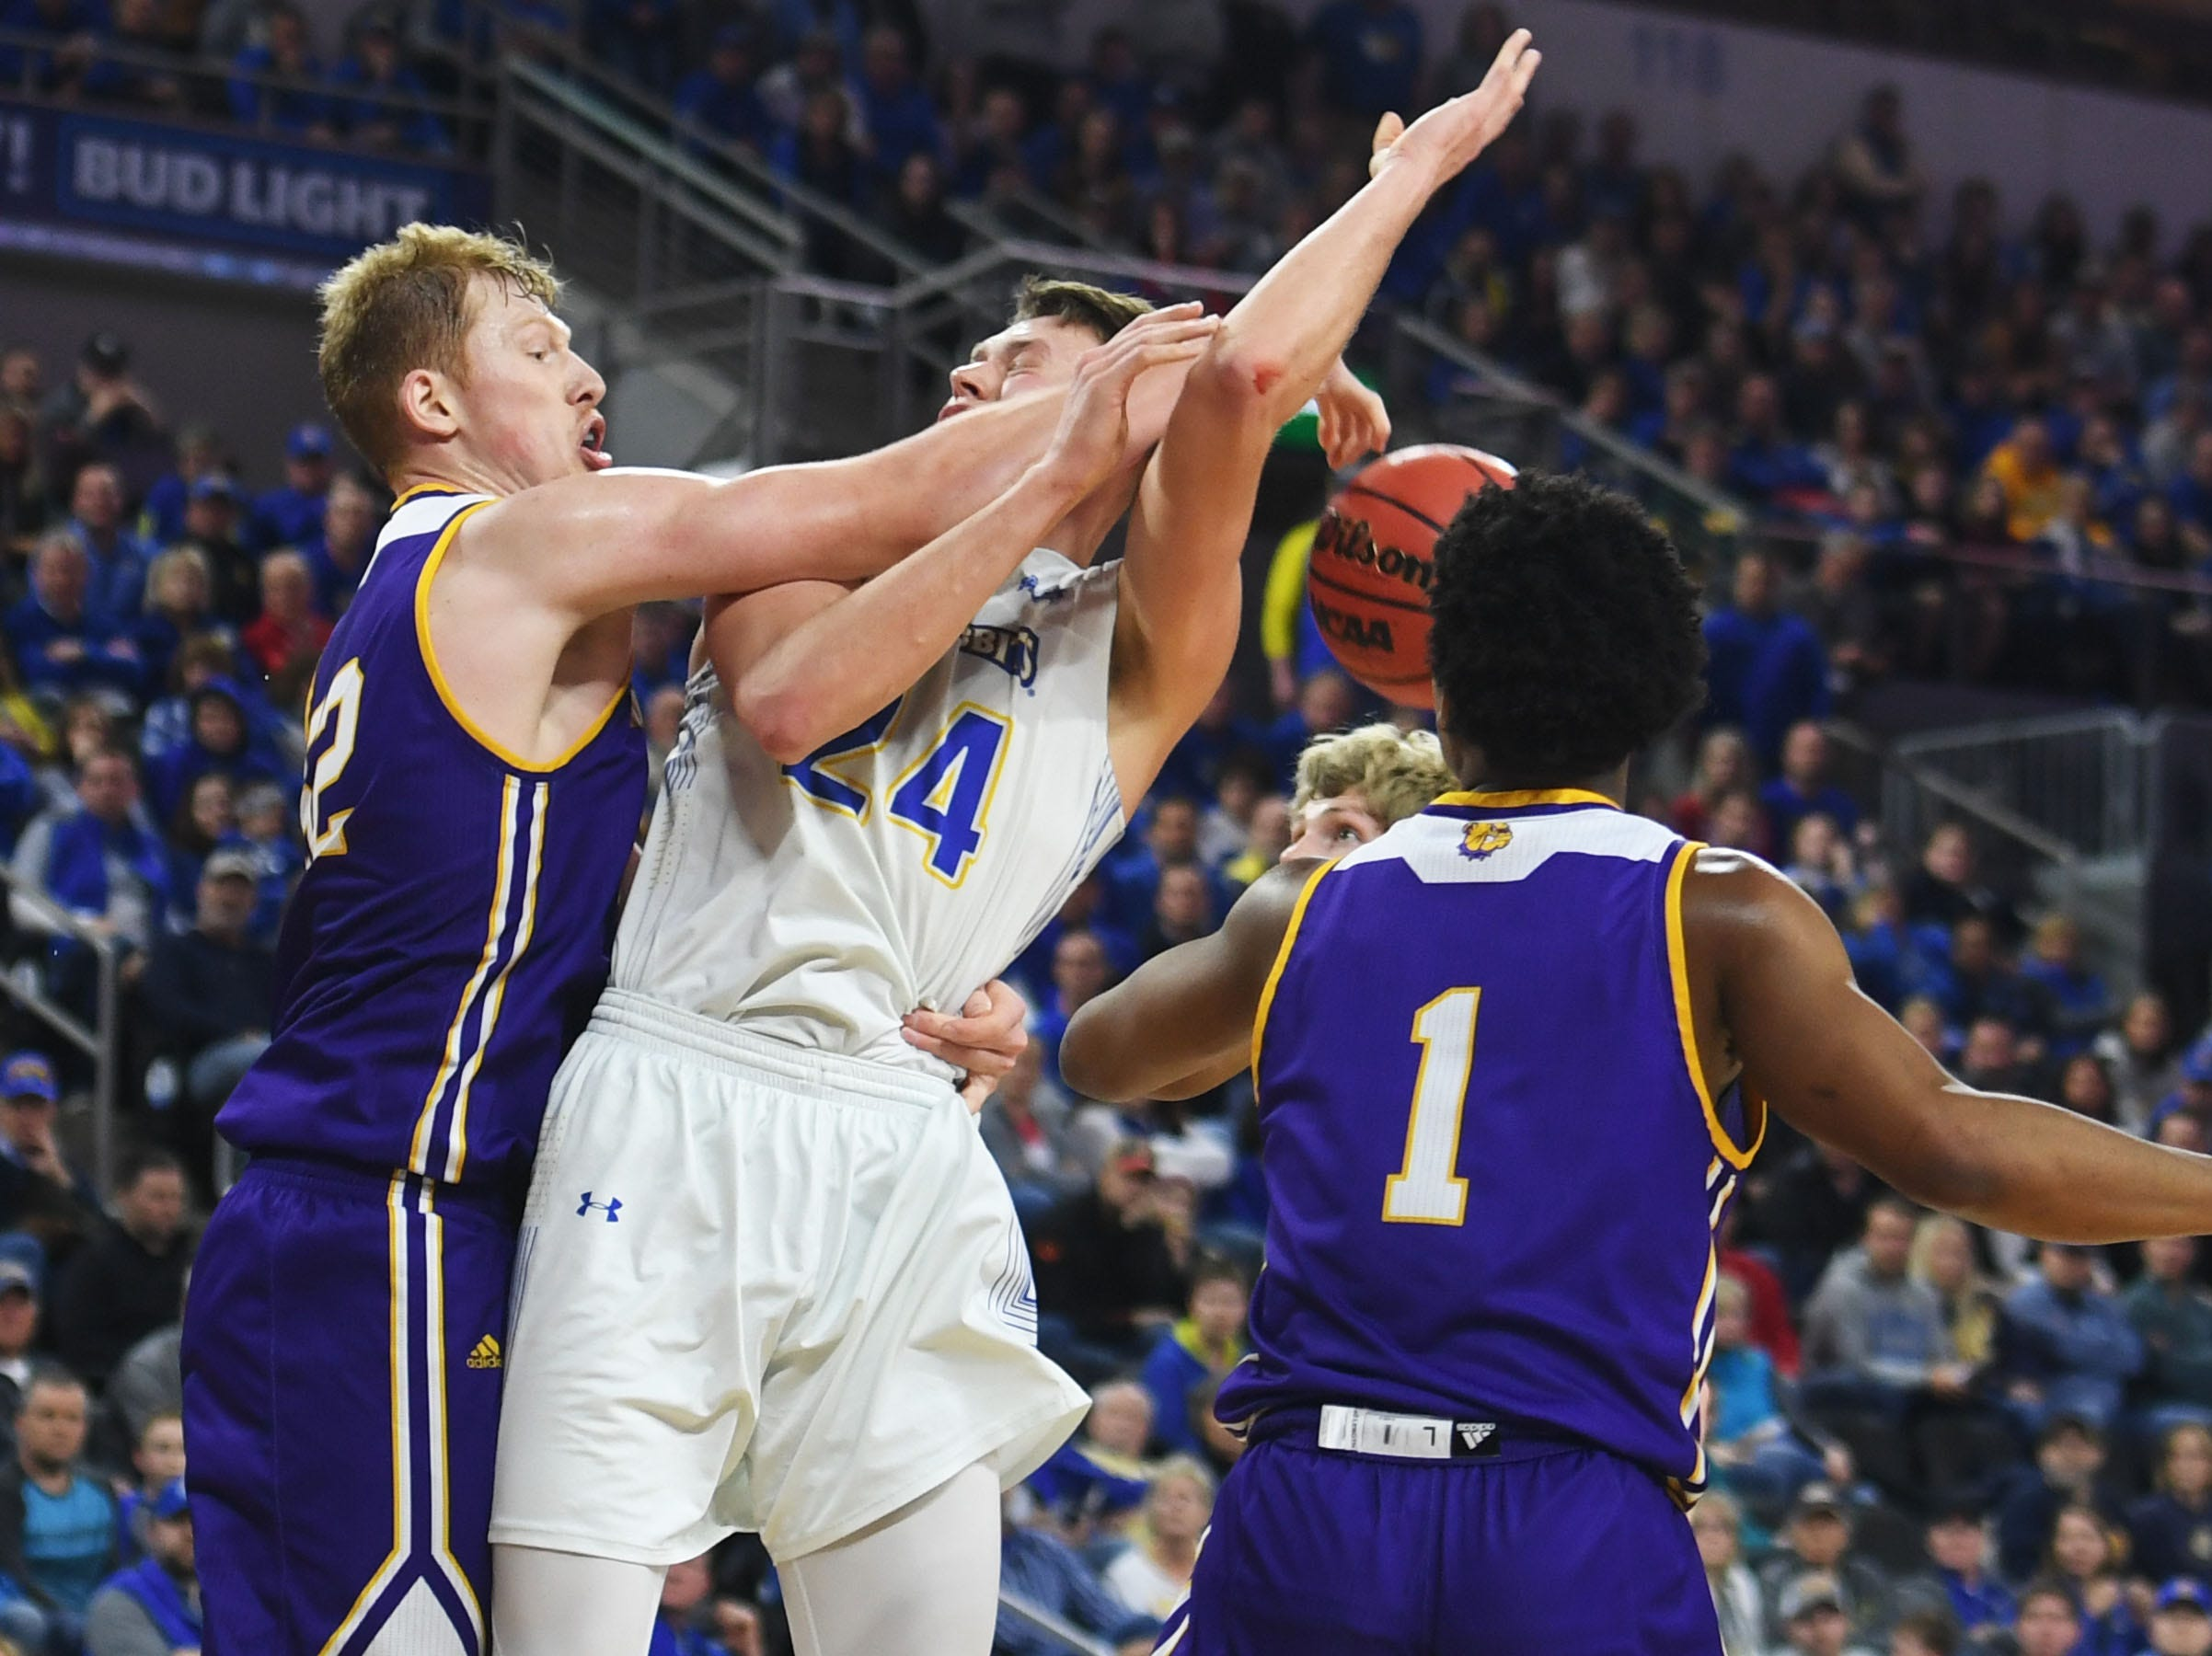 SDSU's Mike Daum attempts to score against Western Illinois' Brandon Gilbeck during the game Saturday, March 9, in the Summit League tournament at the Denny Sanford Premier Center in Sioux Falls.